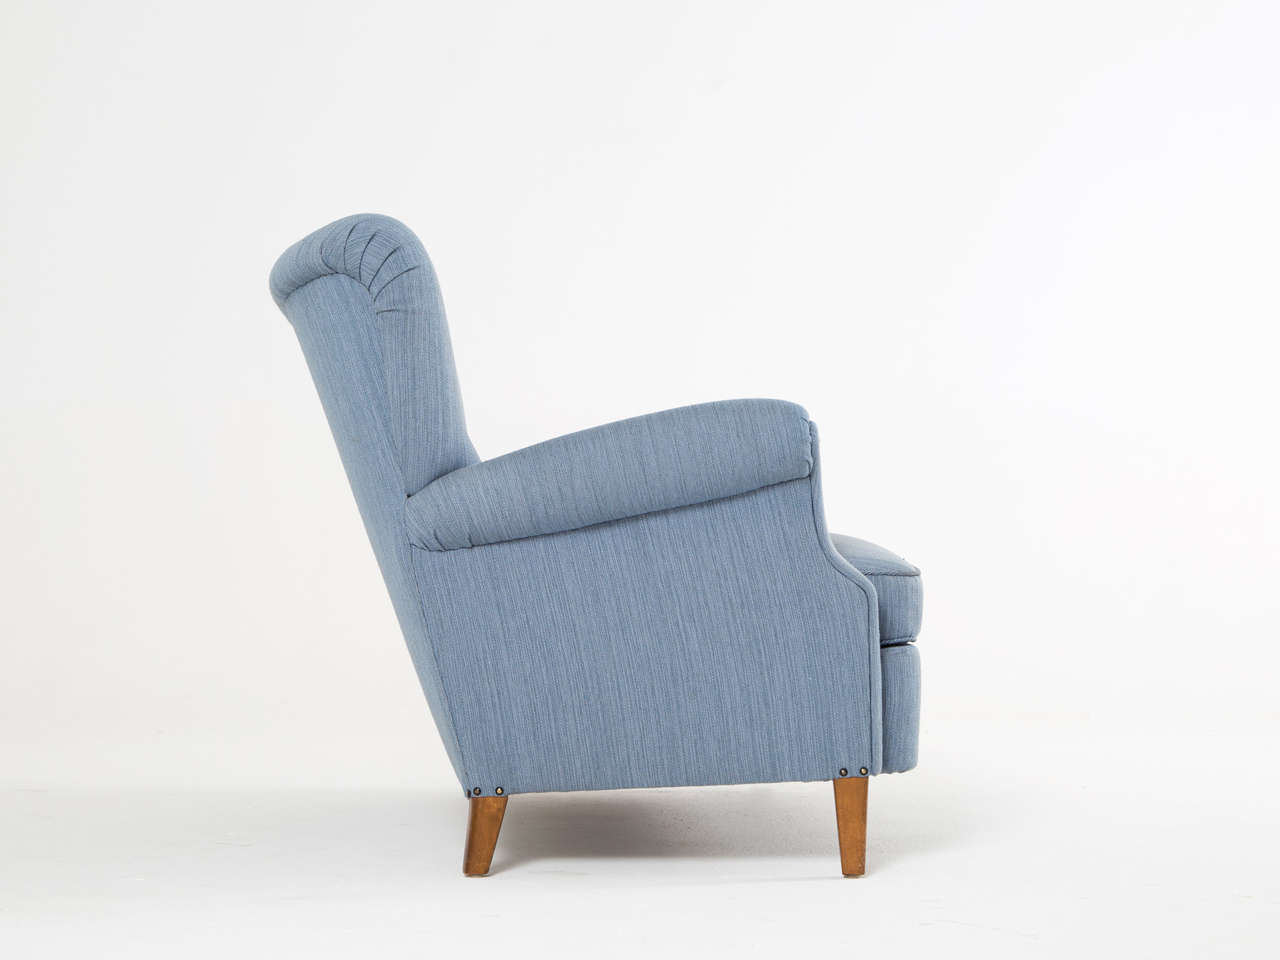 Danish Swedish Blue Two-Seat Sofa, 1950s For Sale